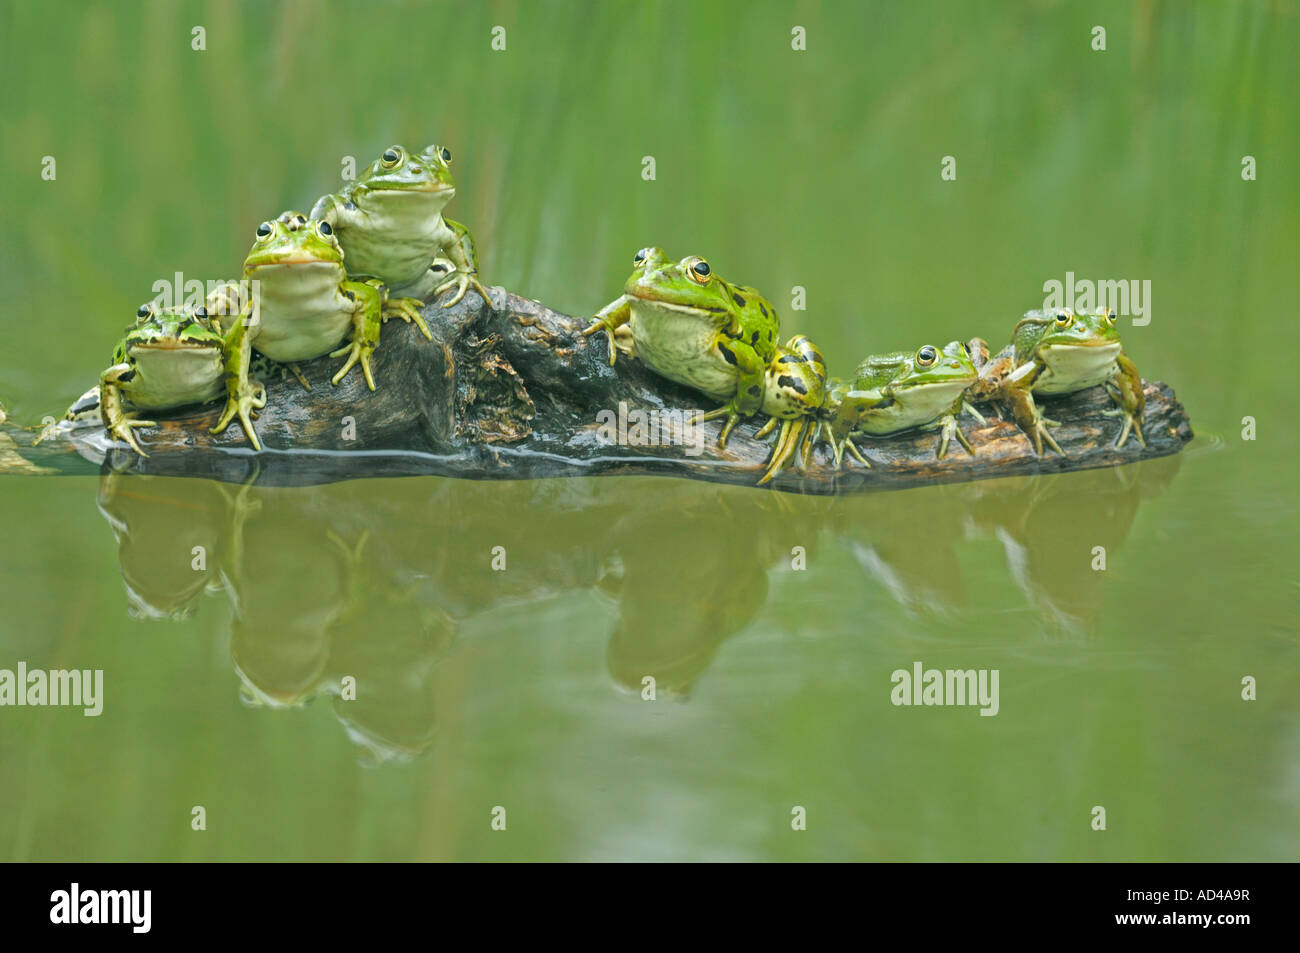 Edible frogs (Rana esculenta) sitting on a branch - Stock Image